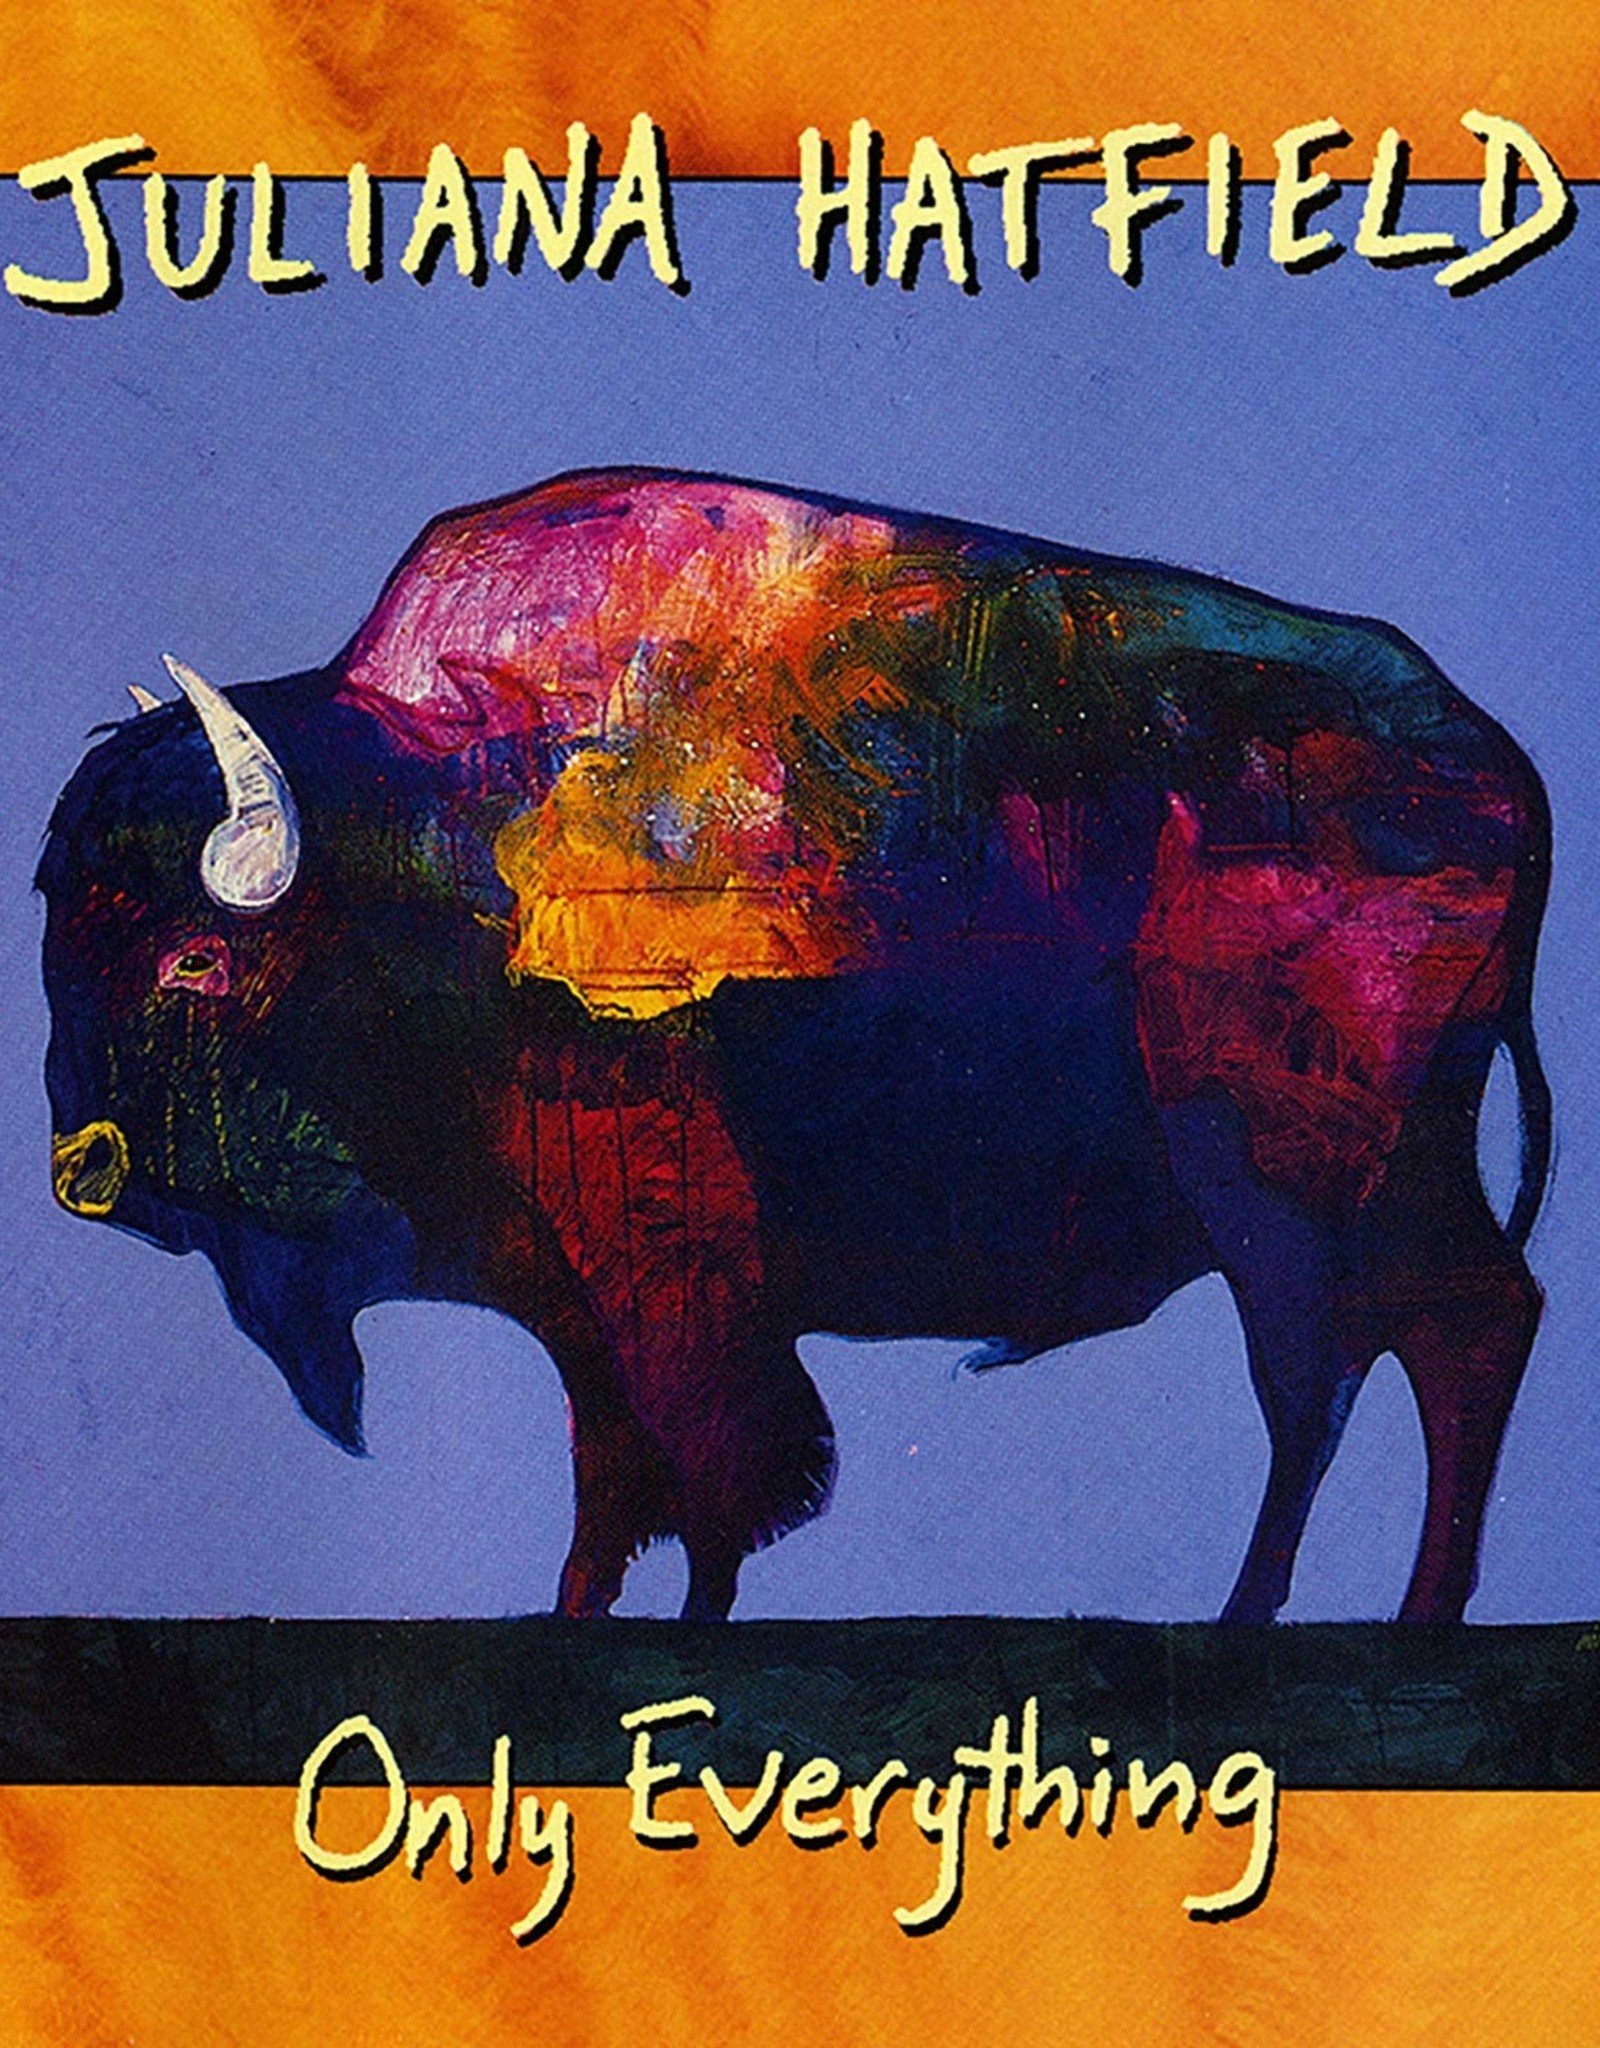 Juliana Hatfield - Only Everything (Rog Limited Edition)